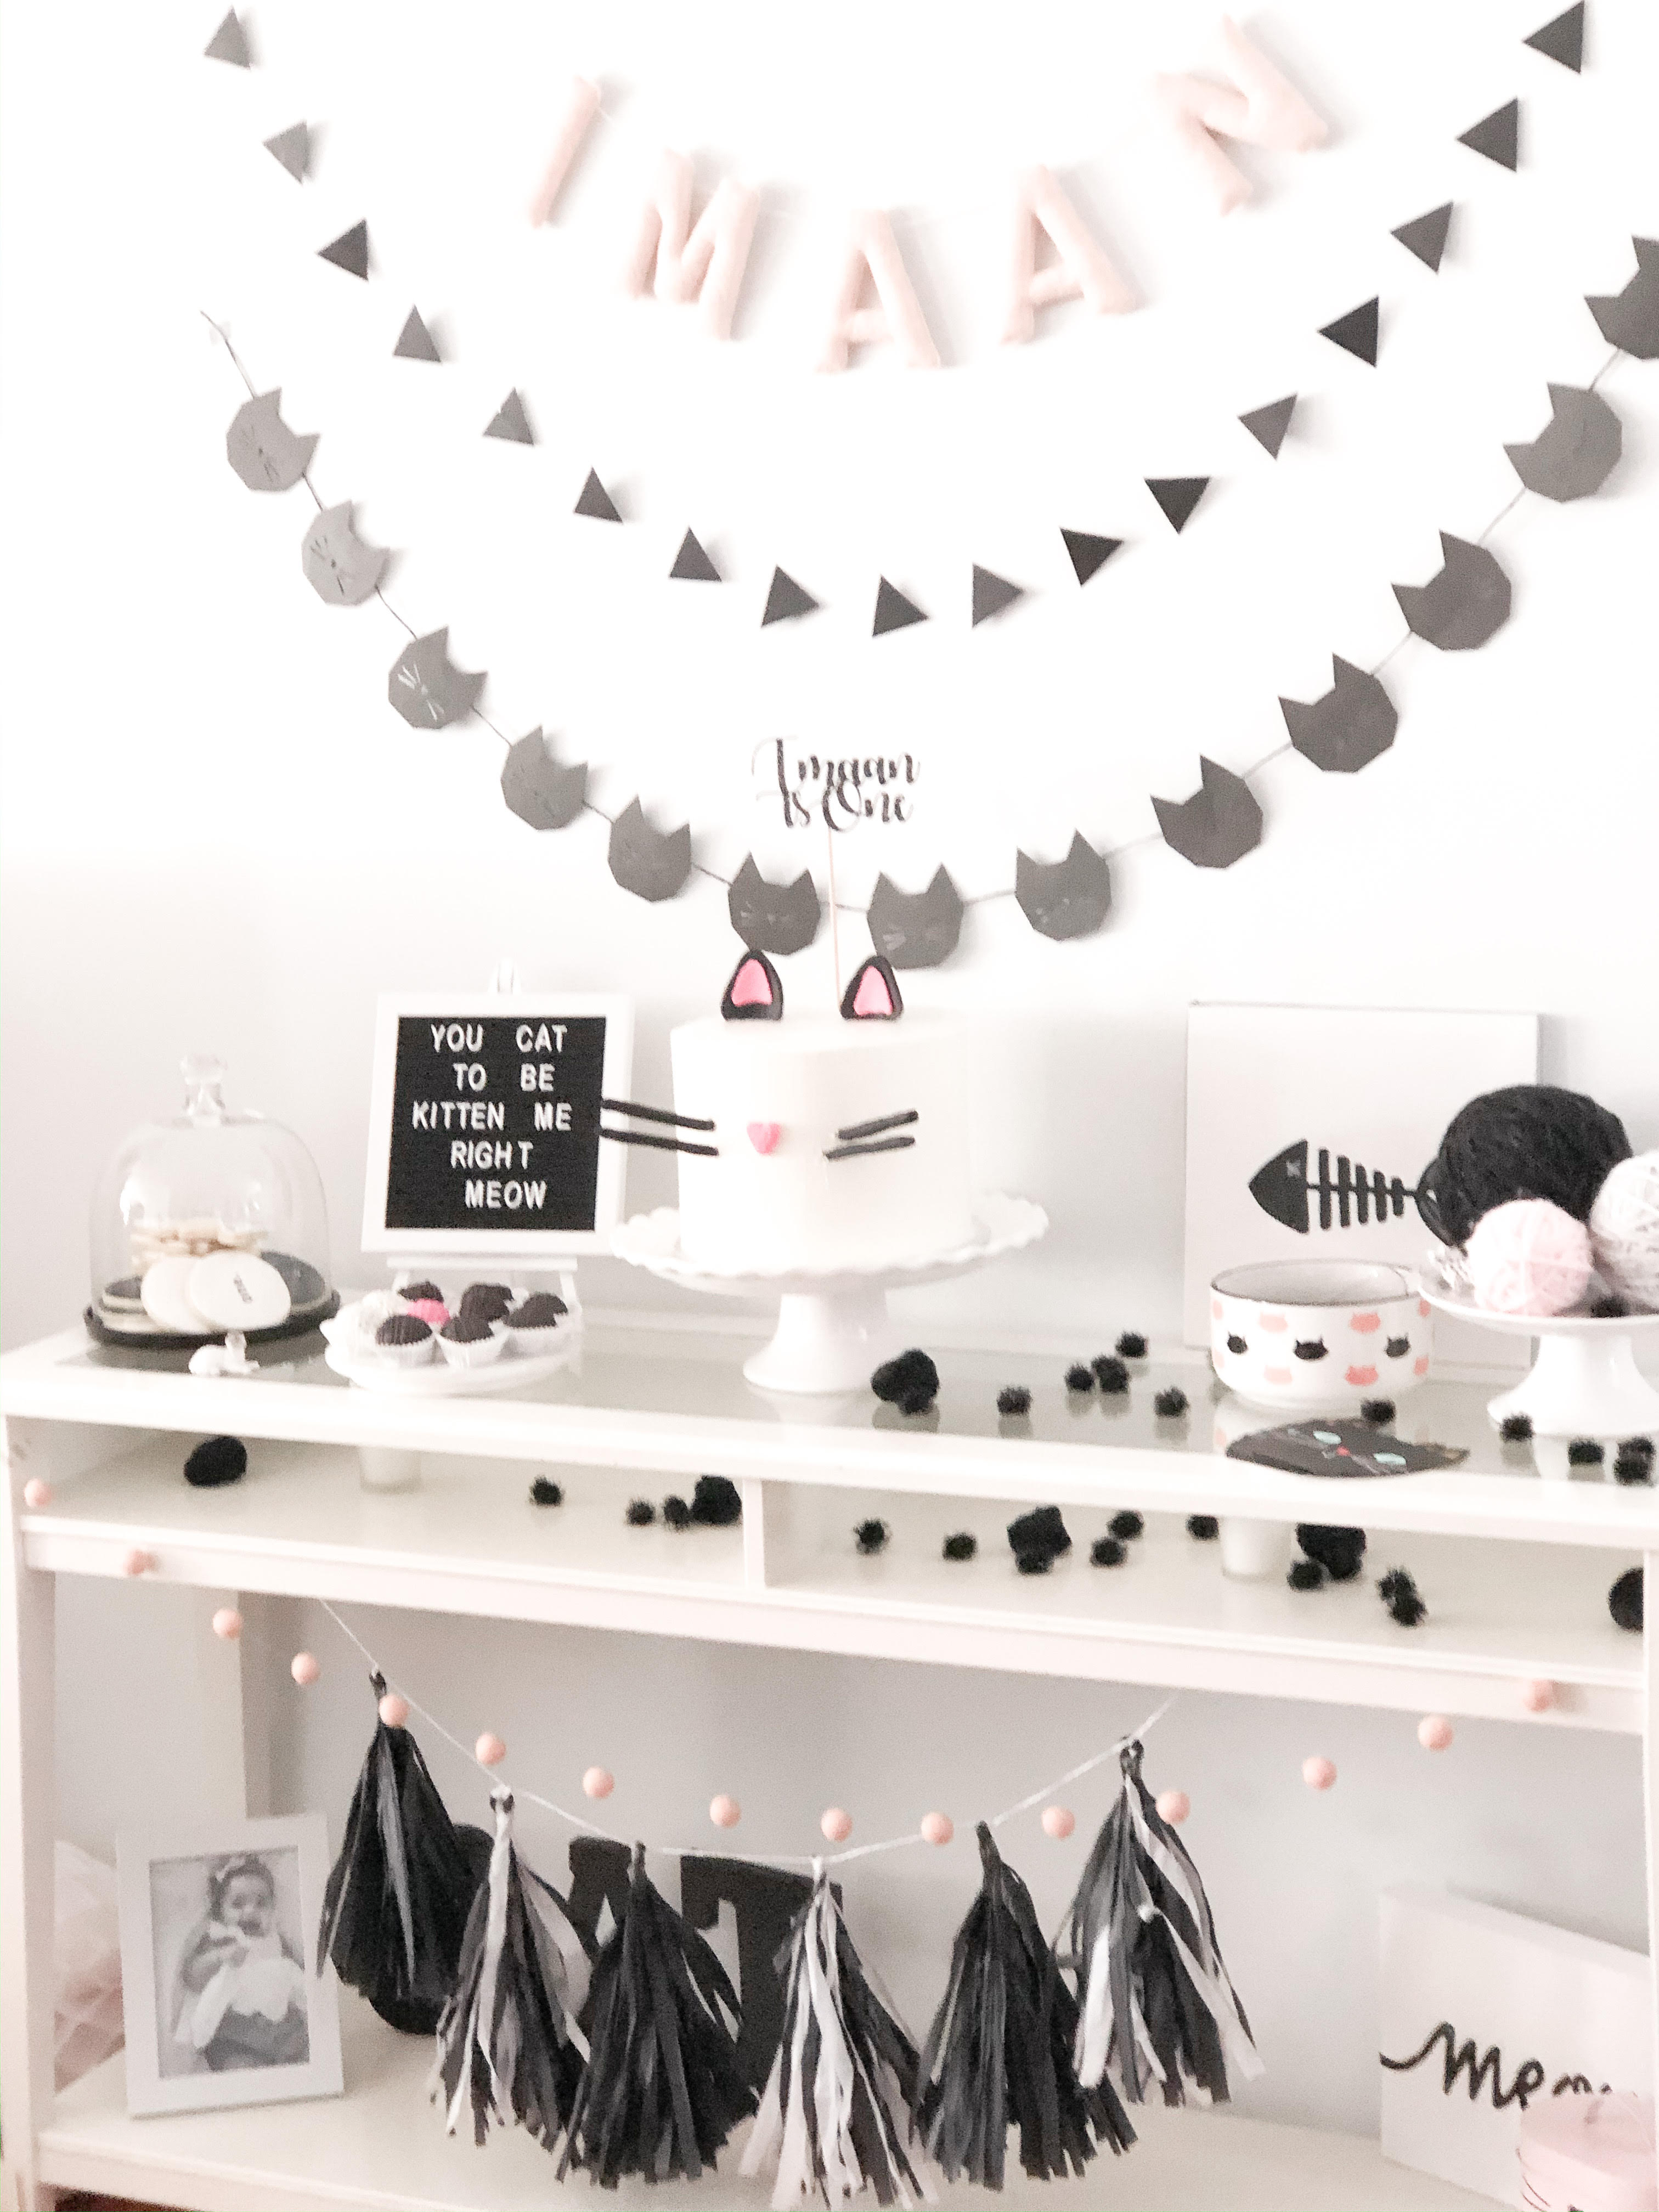 Party Decor! Image by Pink Clove Designs. Name banner and felt ball garland by The Honey Hive.